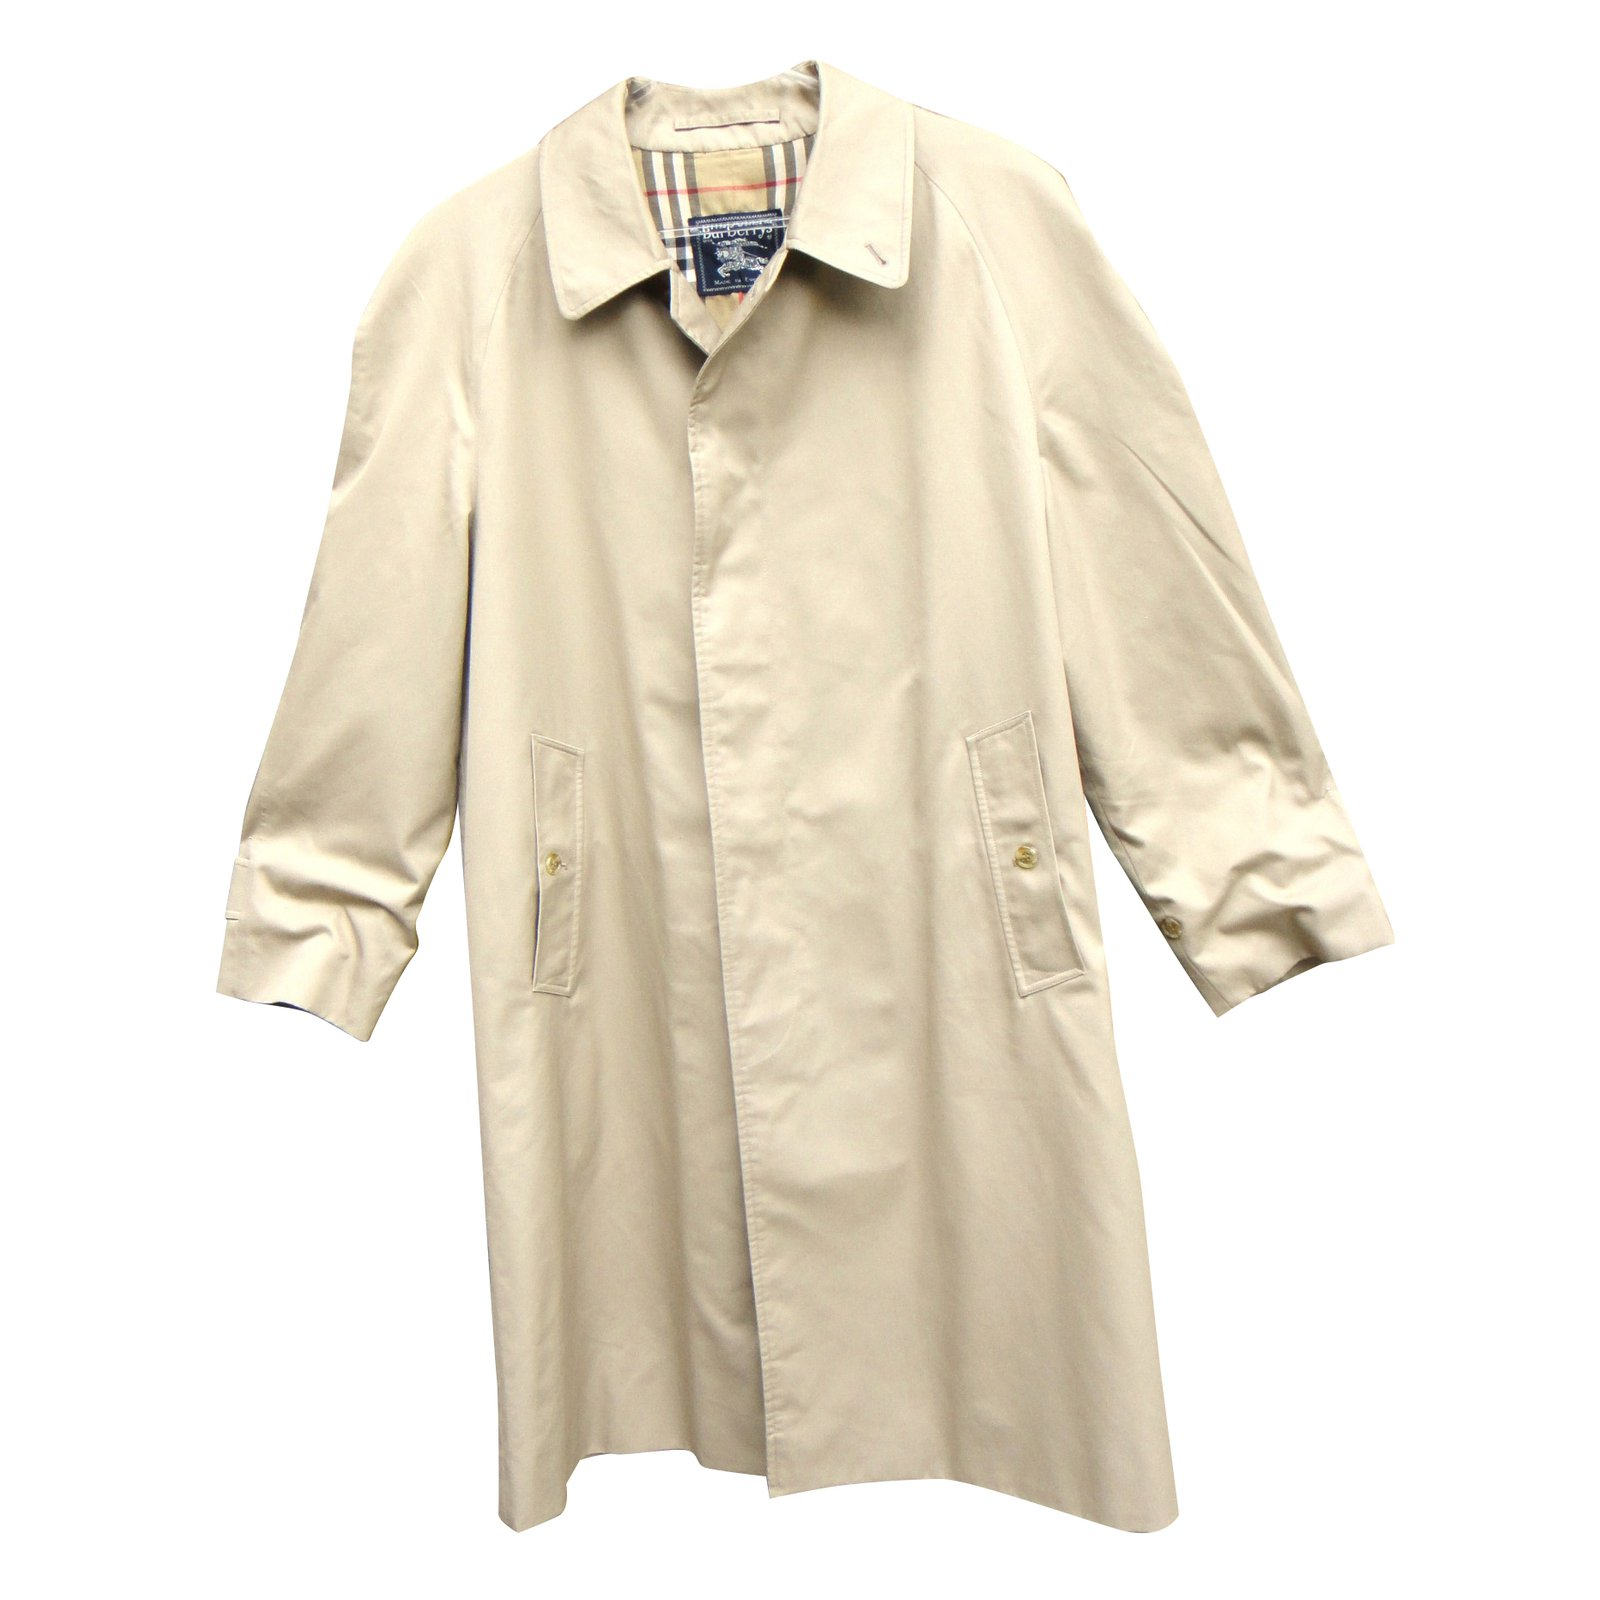 fbf9f943db915f Trench Trench Manteaux polyester Homme Coton Coton Coat 39507 Beige Ref  Burberry wqpRp6U